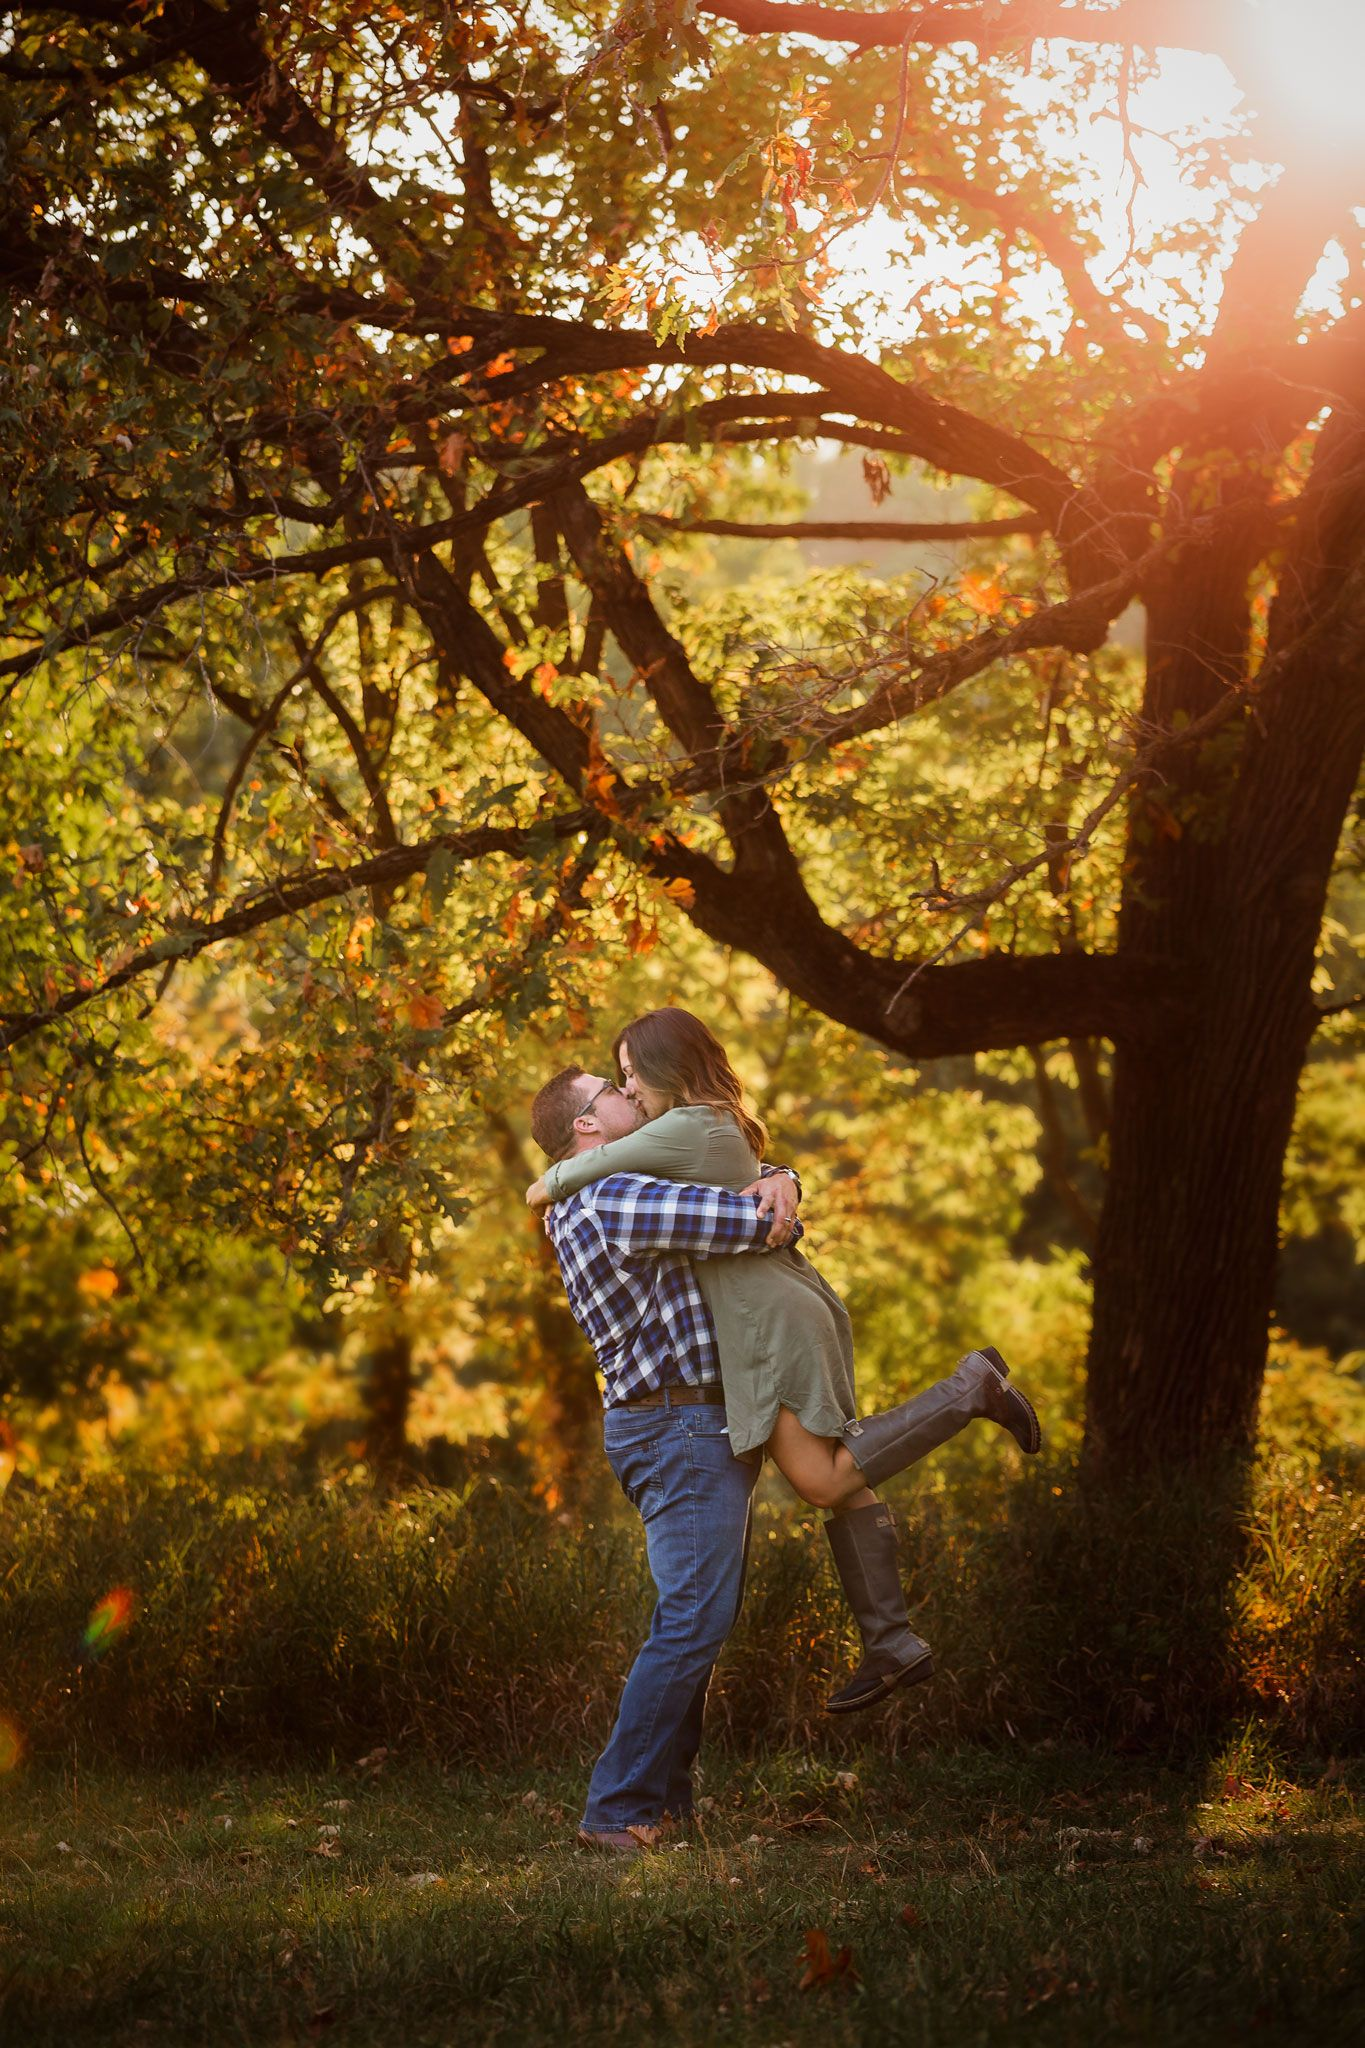 A couple posed for a photo under a sunlit tree in Omaha, Nebraska.